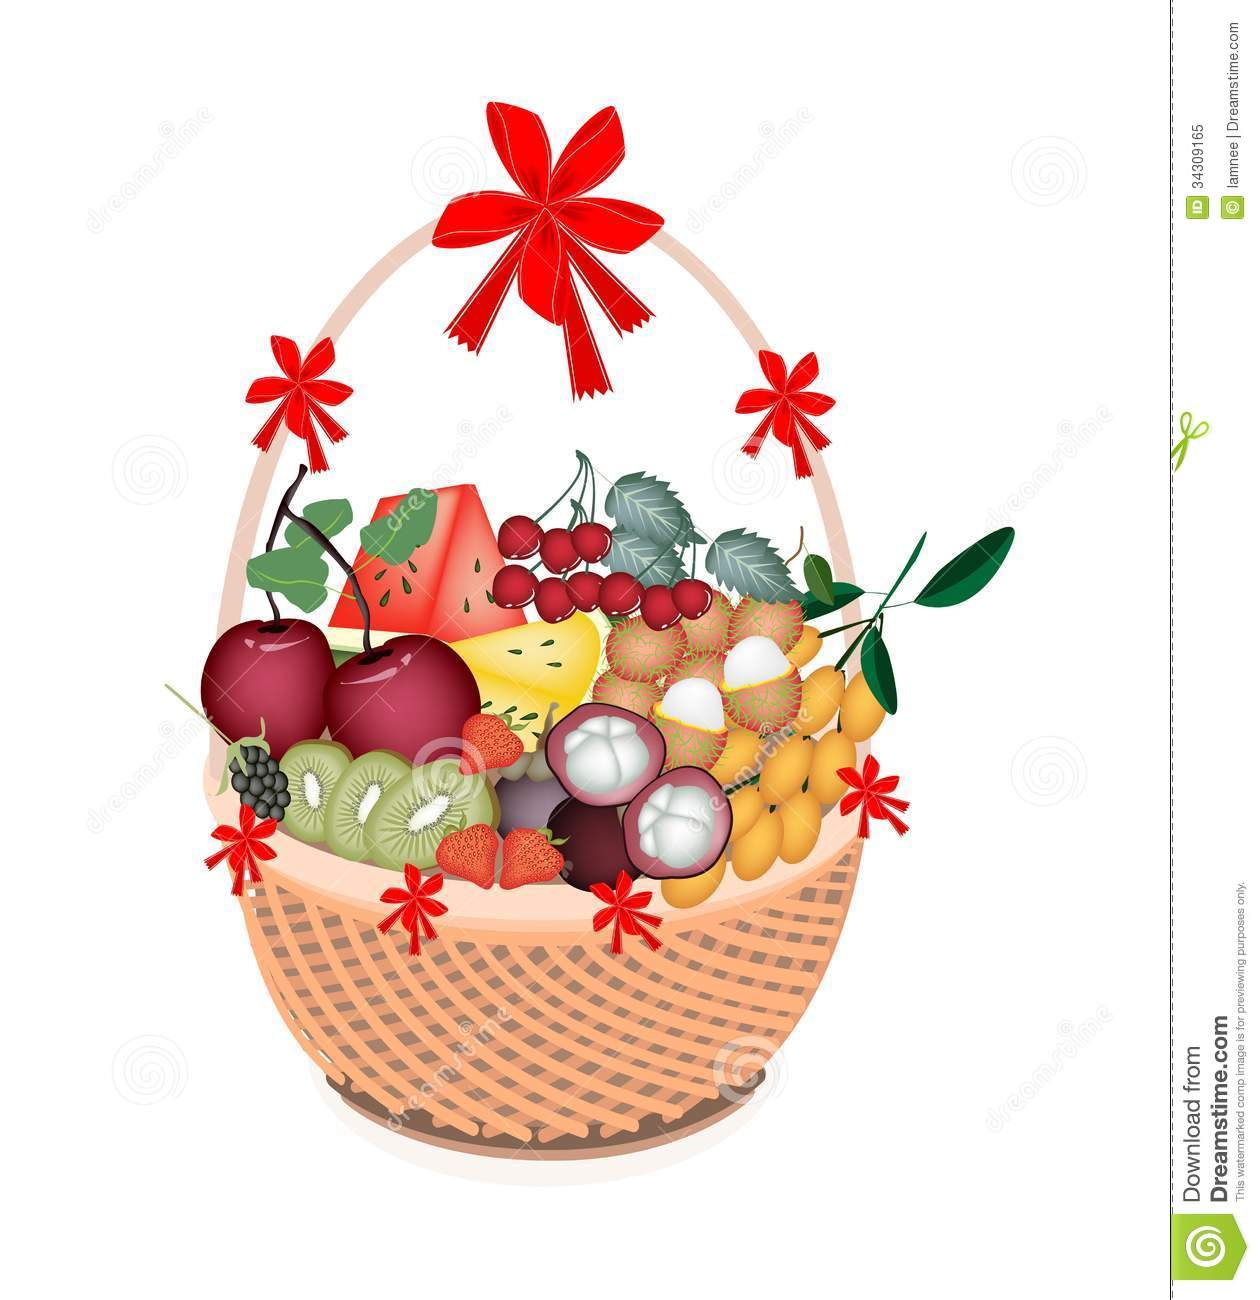 Health and nutrition fruit in gift basket stock vector for How to make christmas food baskets